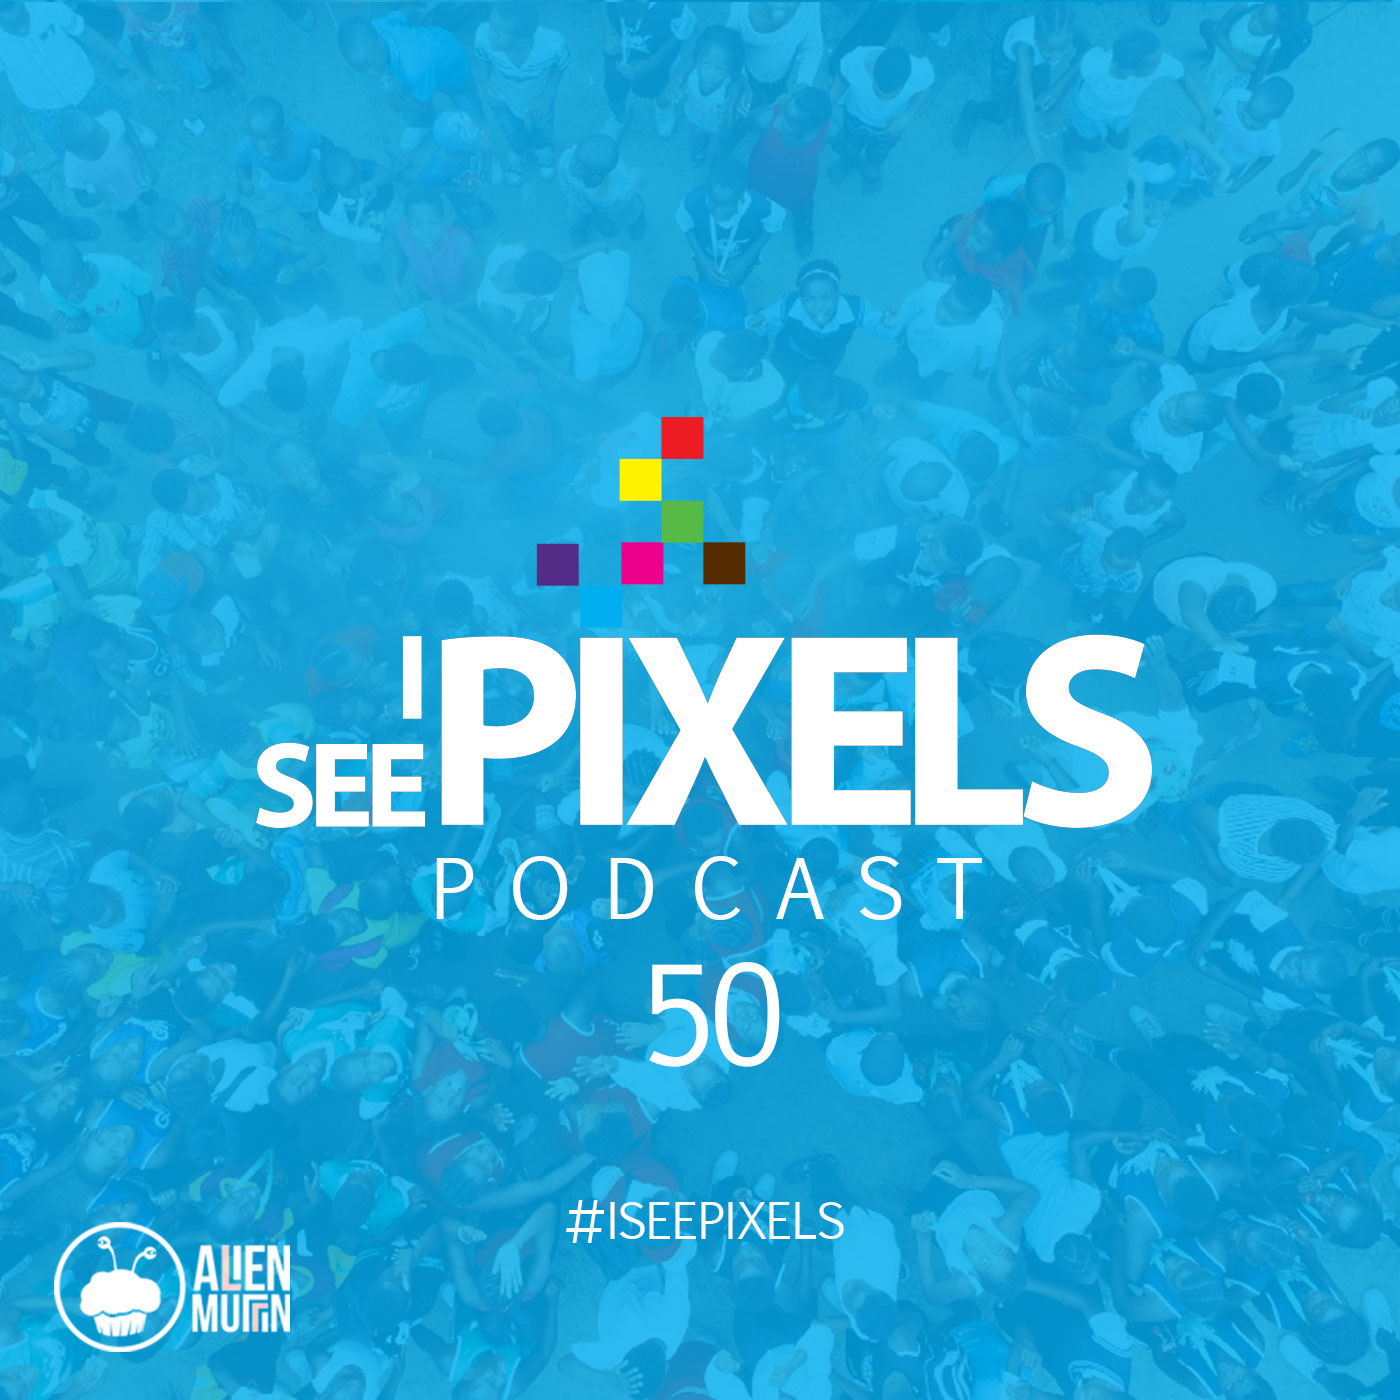 Firm Biz - Working with an outside firm - I See Pixels Podcast Episode 50